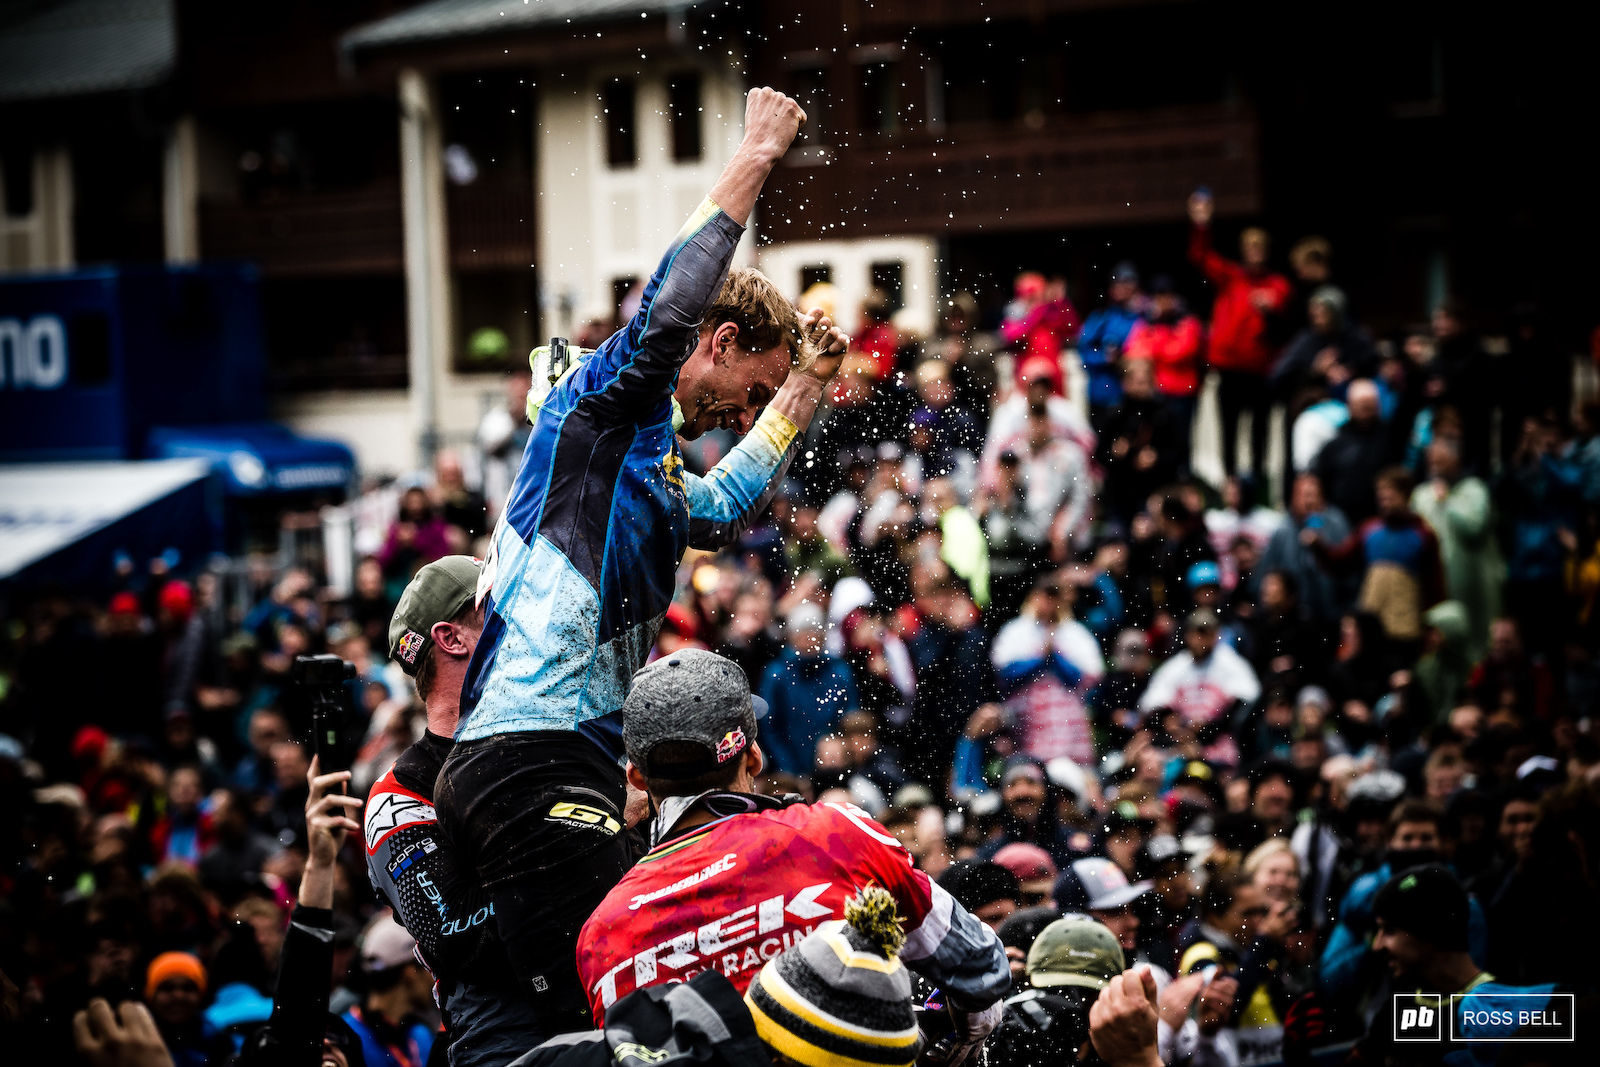 Not bad for a part timer. After winning Whistler EWS Martin Maes caused one of the biggest upsets of all time.